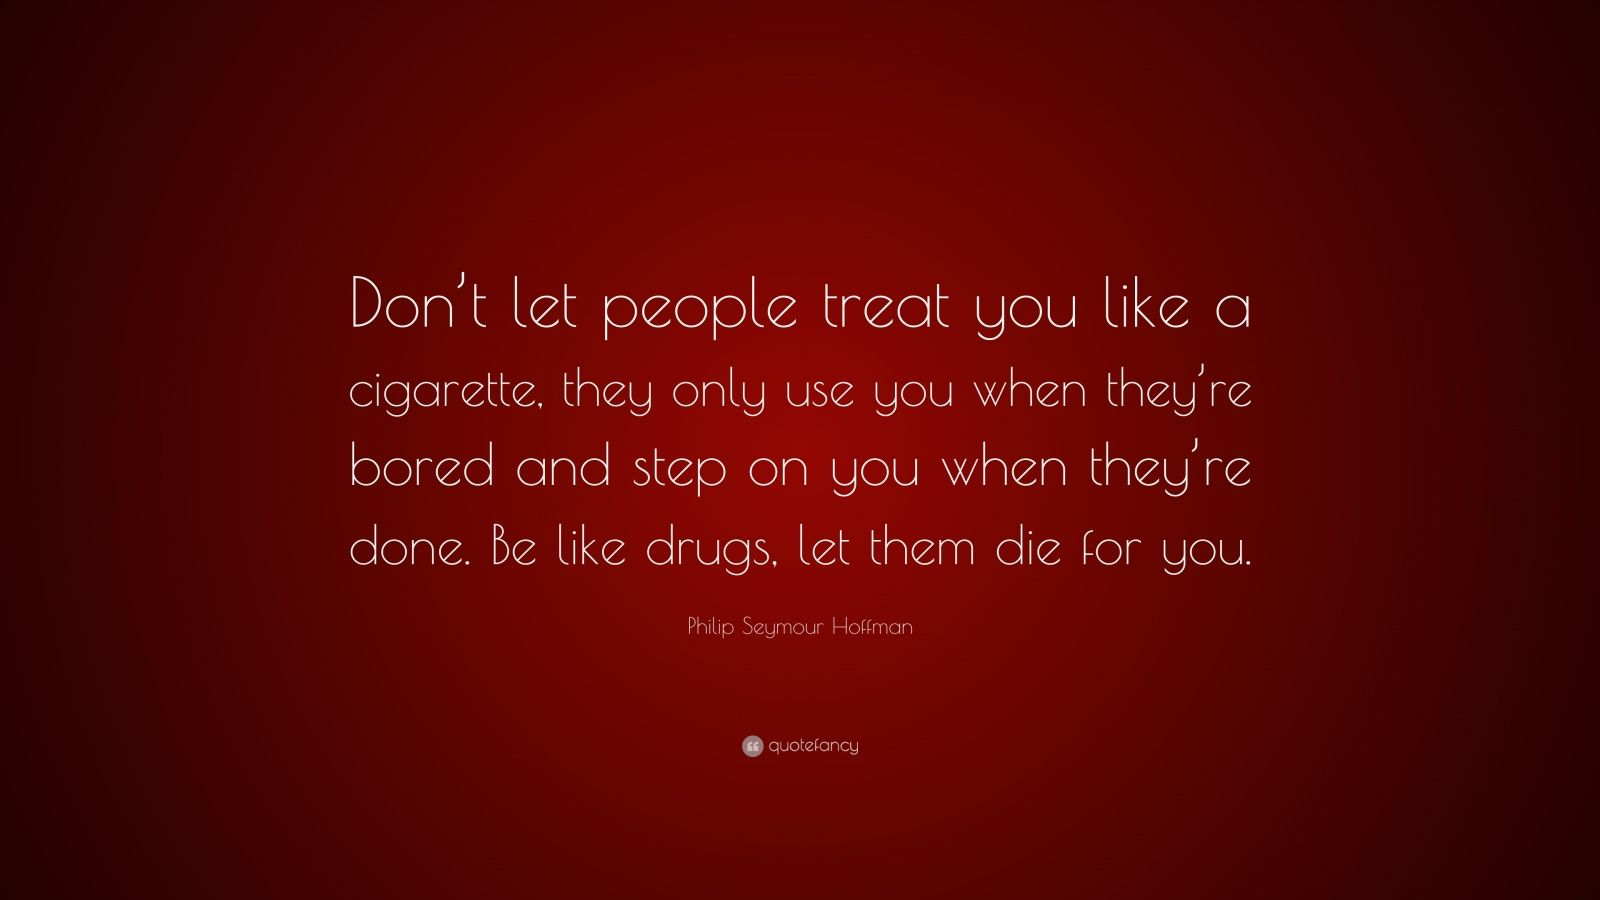 """Philip Seymour Hoffman Quote: """"Don't let people treat you like a cigarette, they only use you when they're bored and step on you when they're done. Be like drugs, let them die for you."""""""